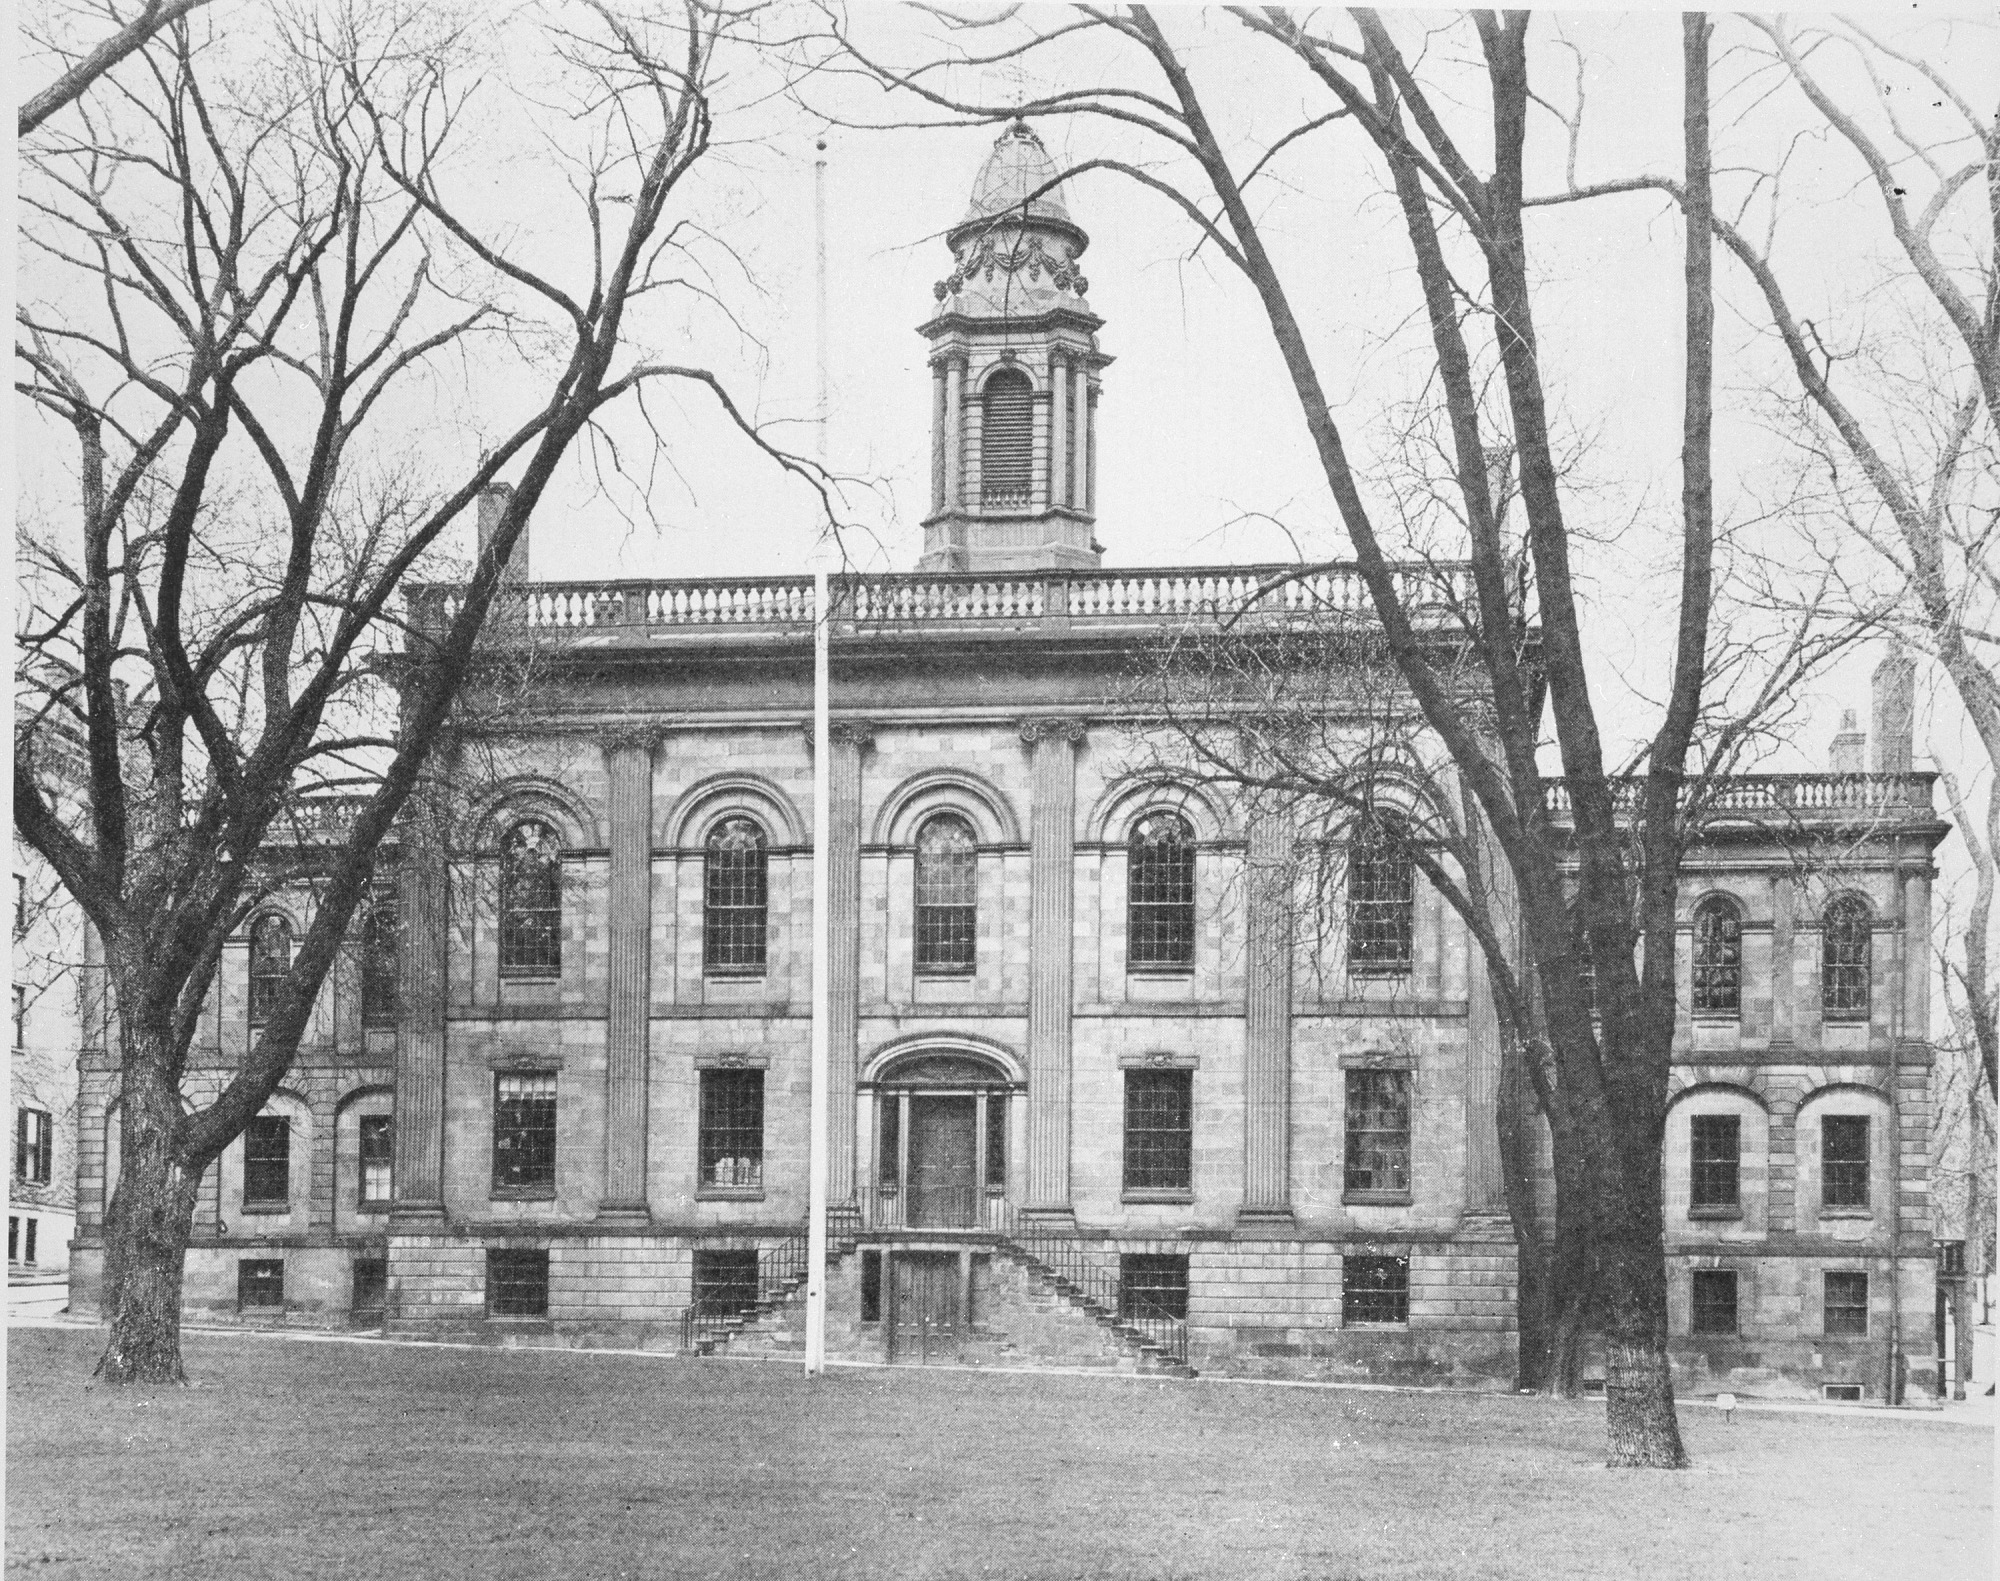 Image is of the Albany Academy, Albany, New York, Smithsonian Institution Archives, negative number 96-4474.